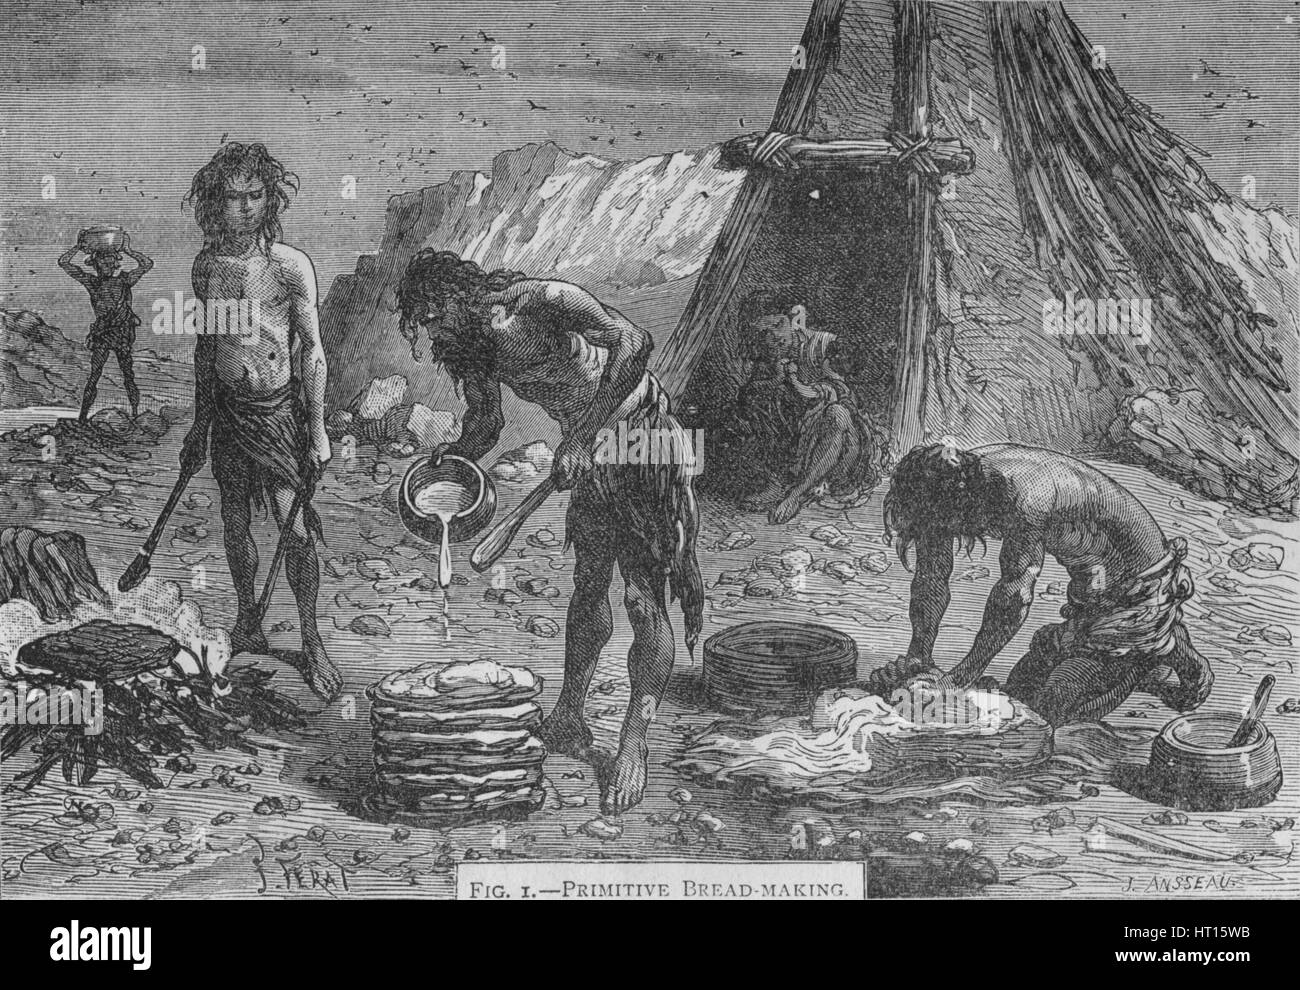 Primitive breadmaking, 1894. Artist: Unknown. - Stock Image